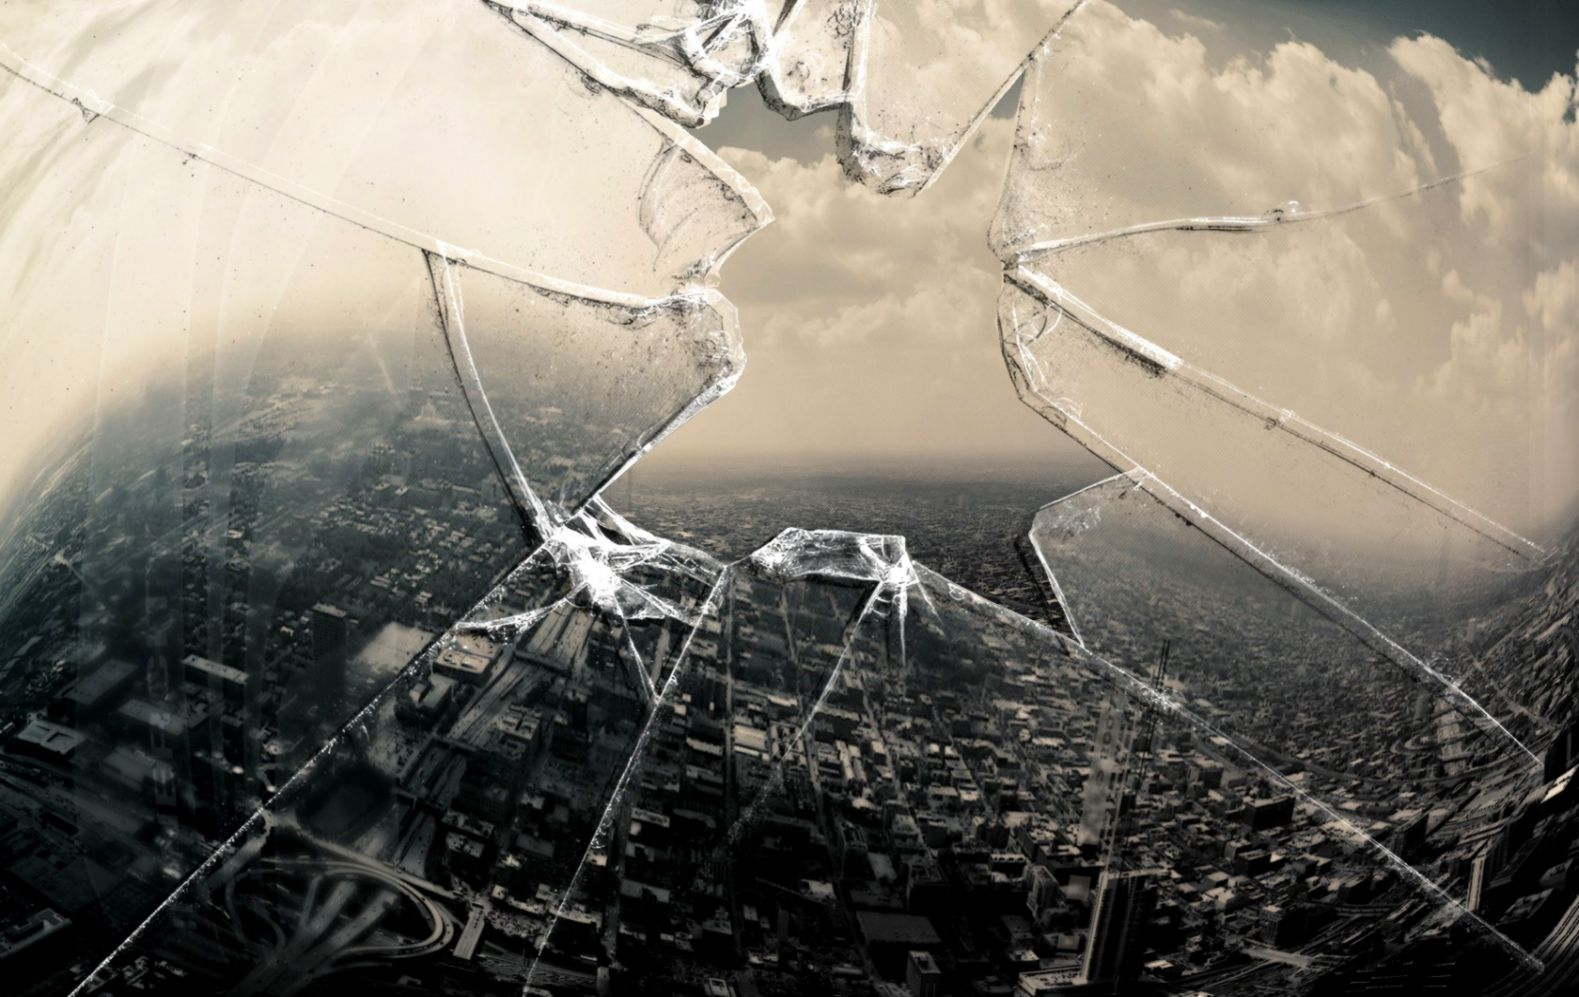 Android Wallpapers Hd Broken Glass Free Download For Pc Wallpapers